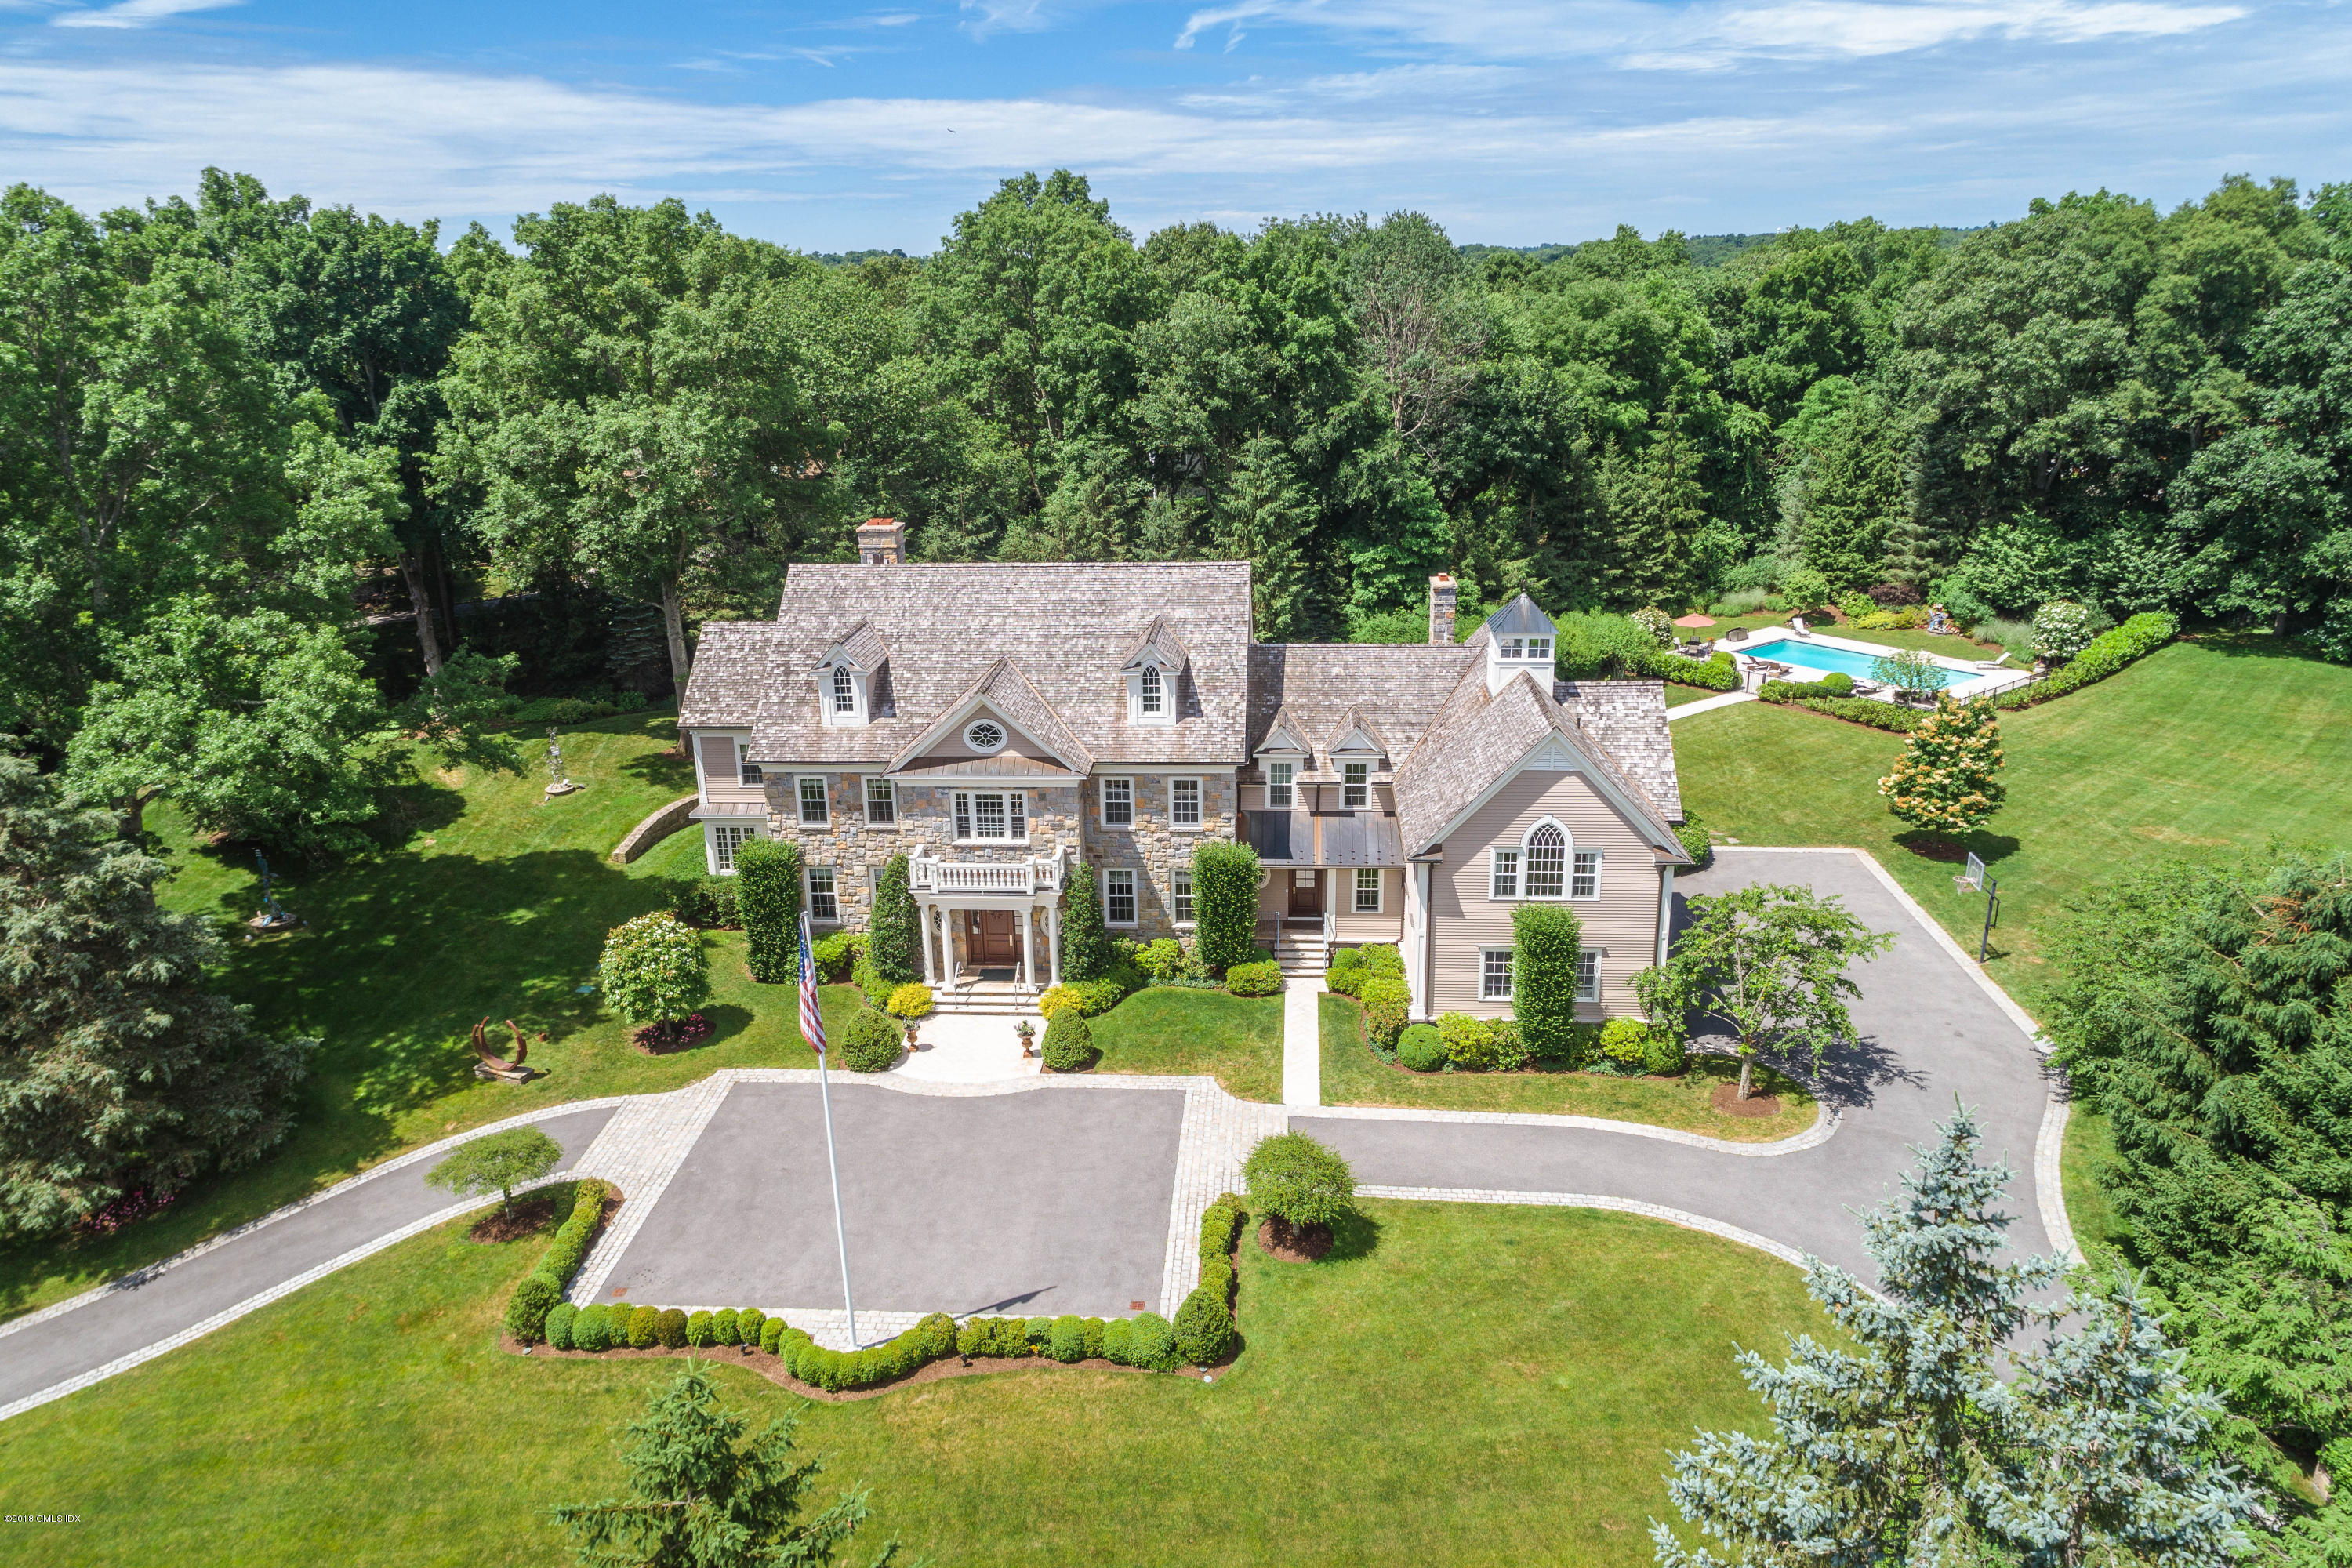 25 Orchard Hill Lane,Greenwich,Connecticut 06831,5 Bedrooms Bedrooms,6 BathroomsBathrooms,Single family,Orchard Hill,103811